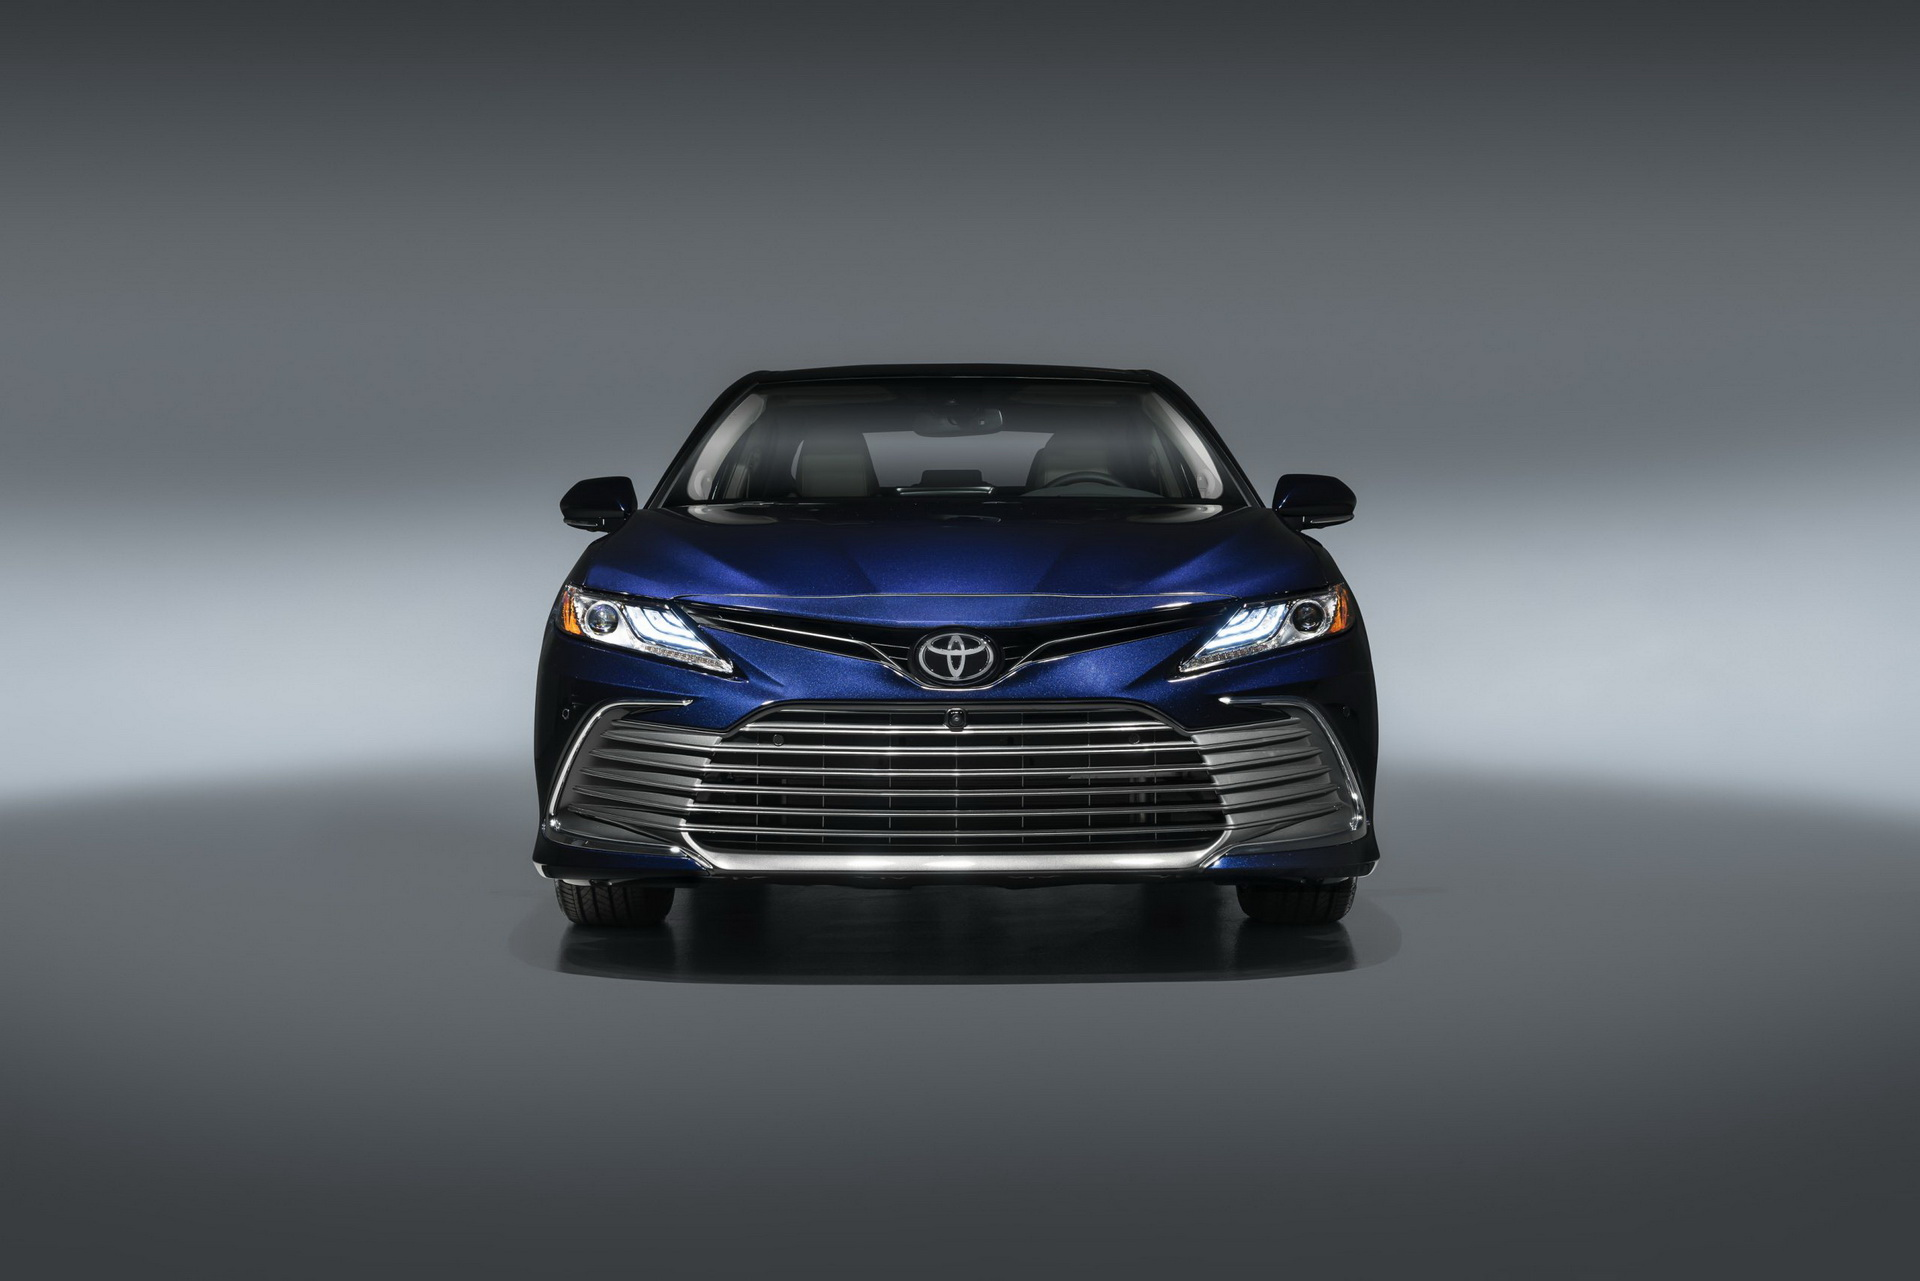 Camry-cafeautovn-7